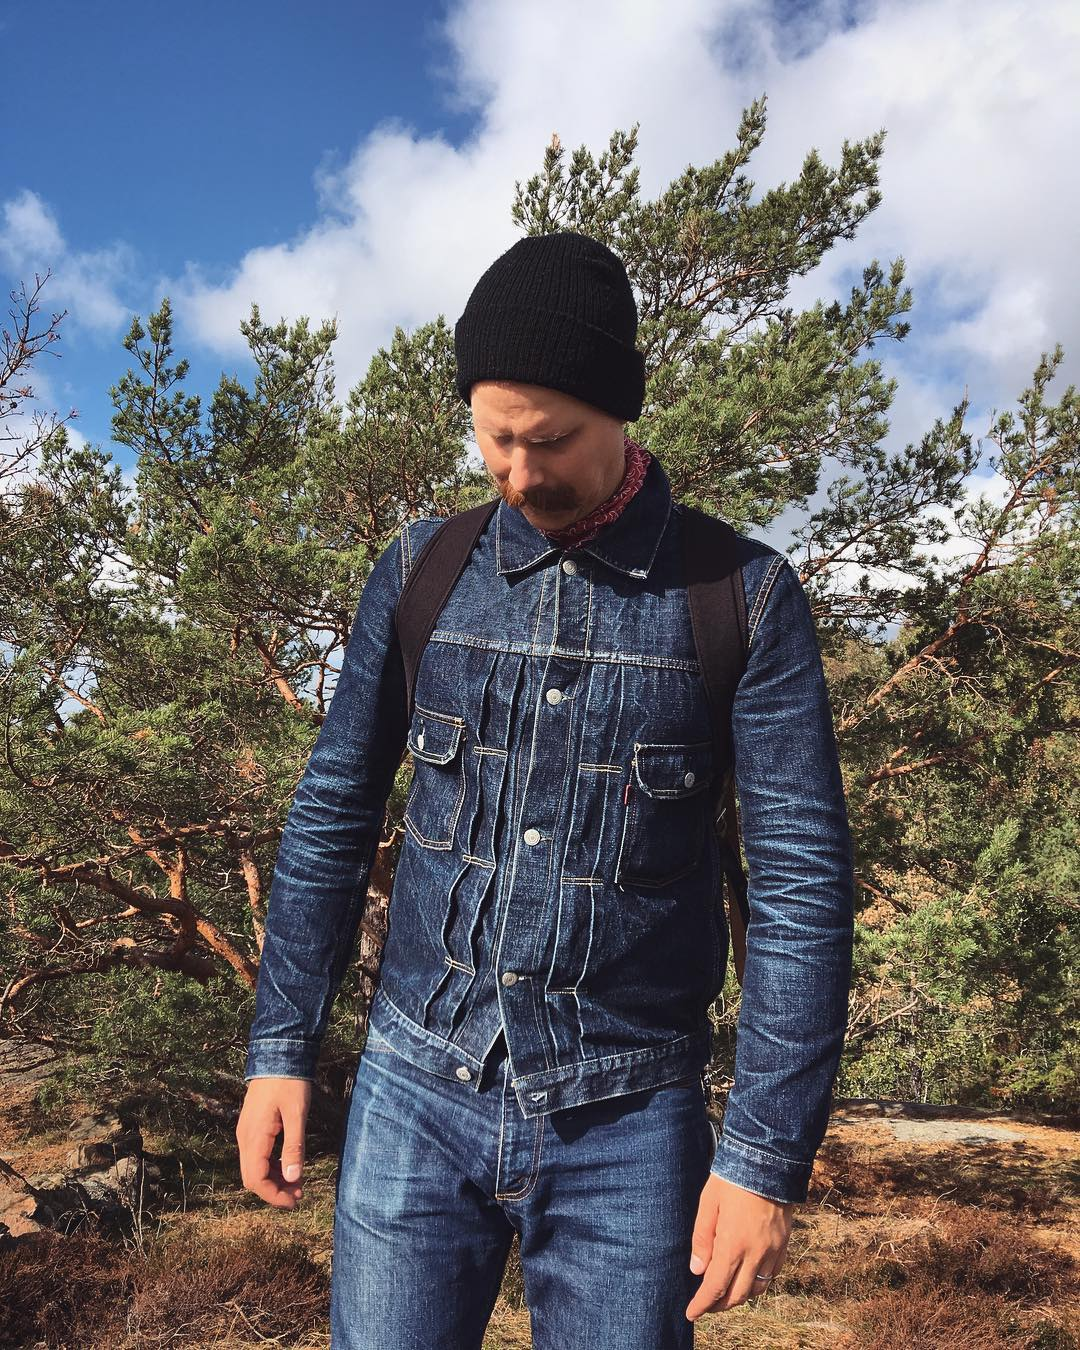 Must-follow Instagrammers, Denimhunters, raw denim, Swedish denim dudes, matz.megatron